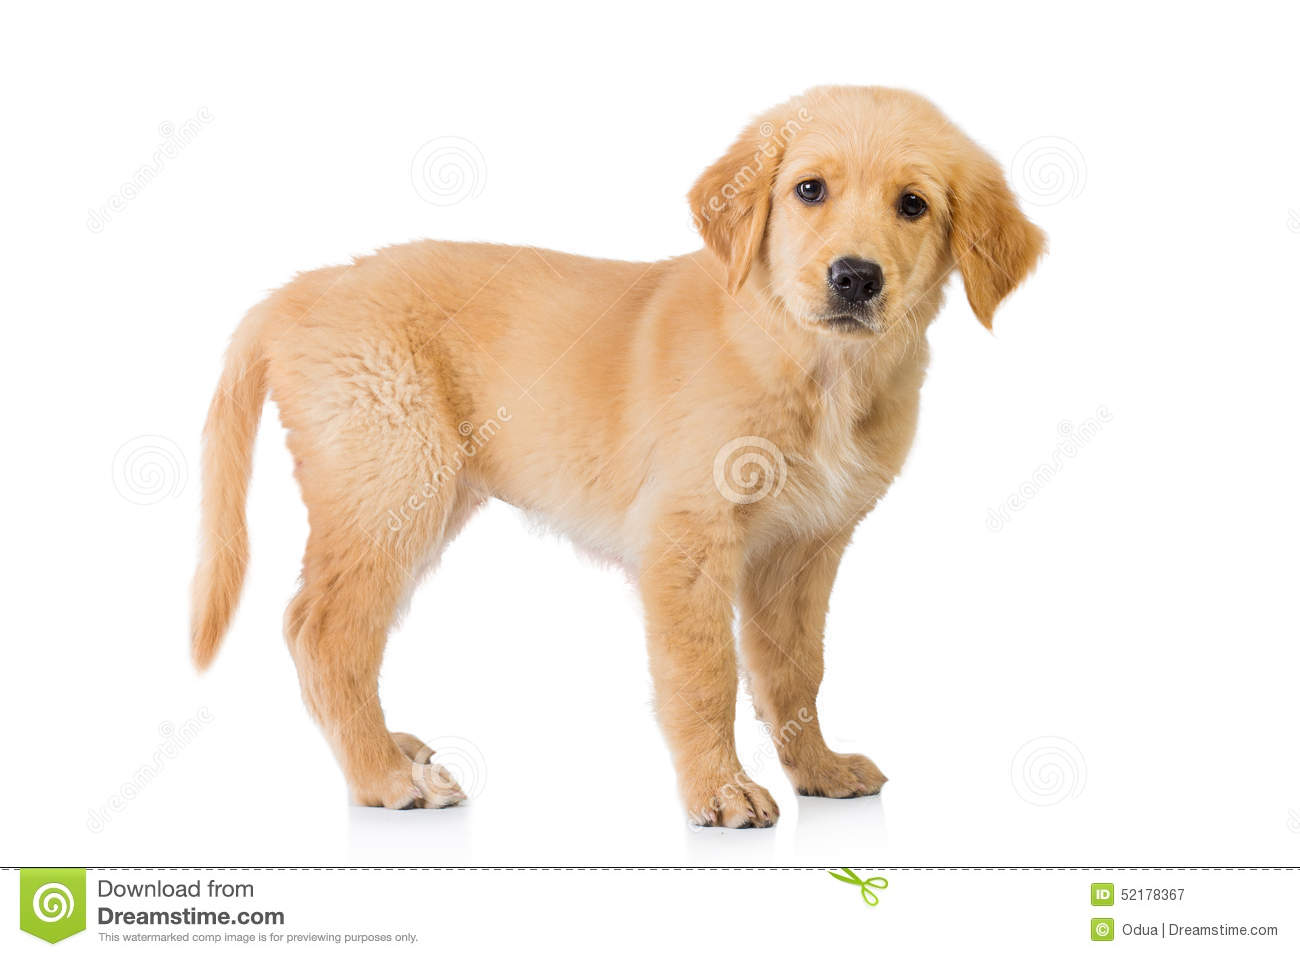 Dog Standing Over Puppy